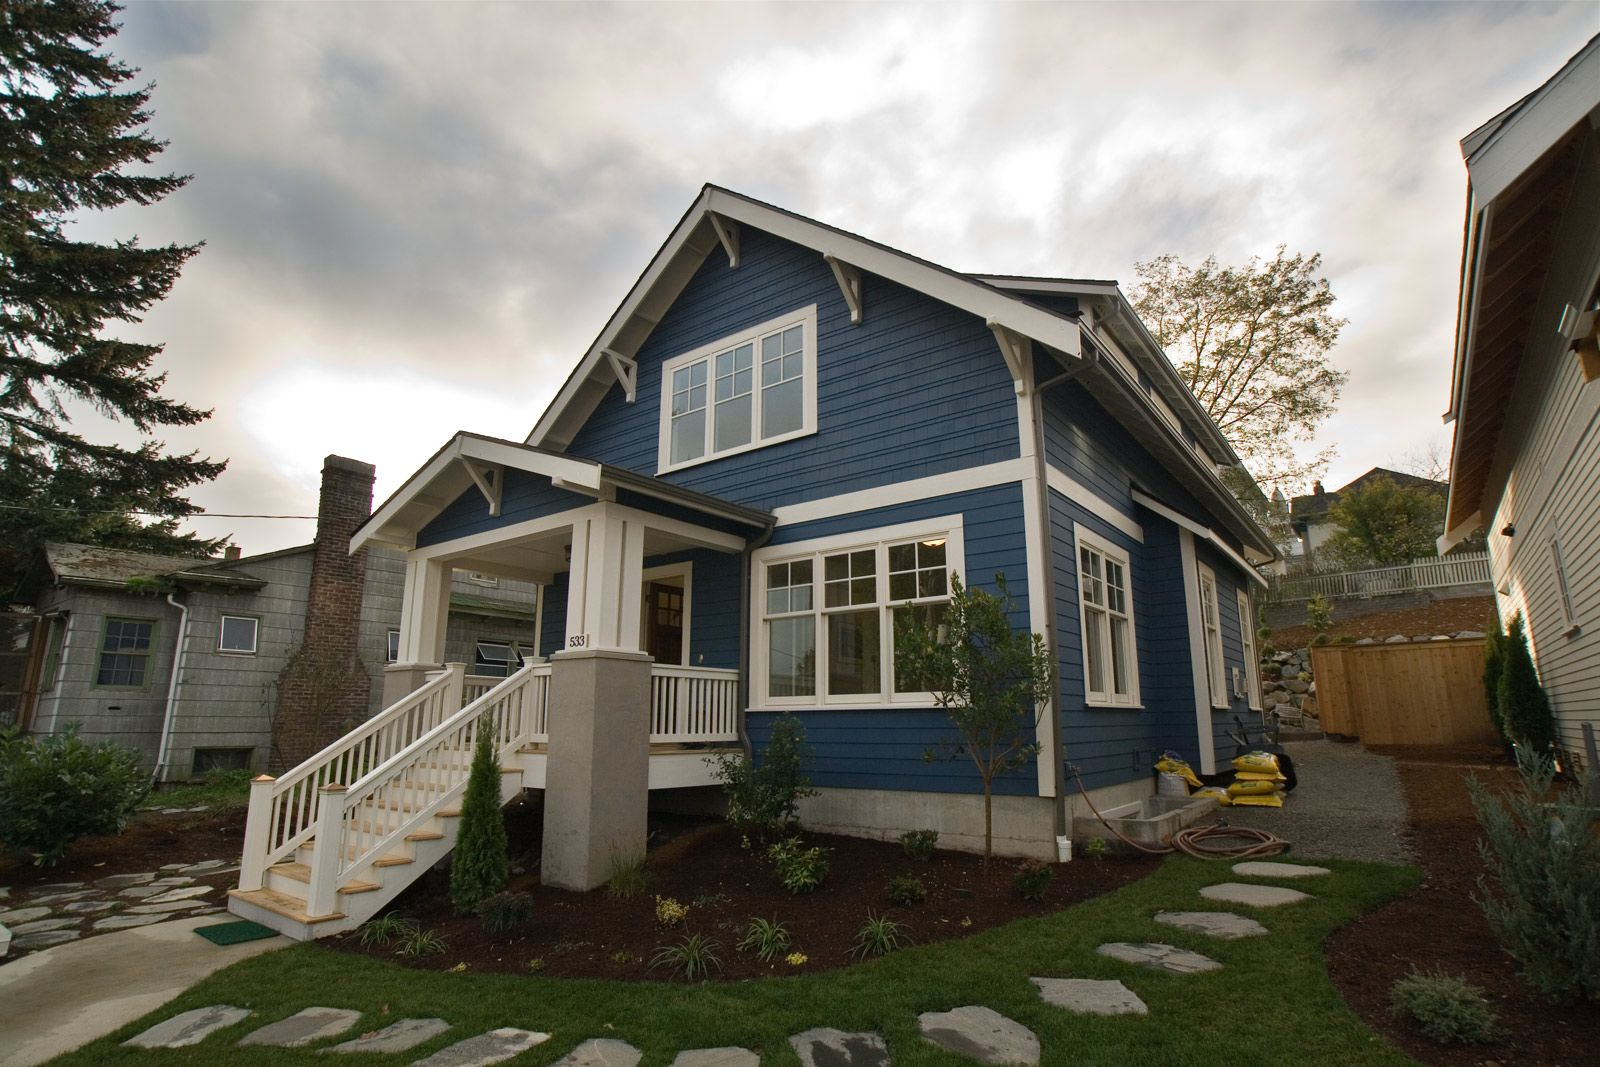 Classic craftsman bungalow colors for sale new 20th ave for Craftsman exterior color schemes